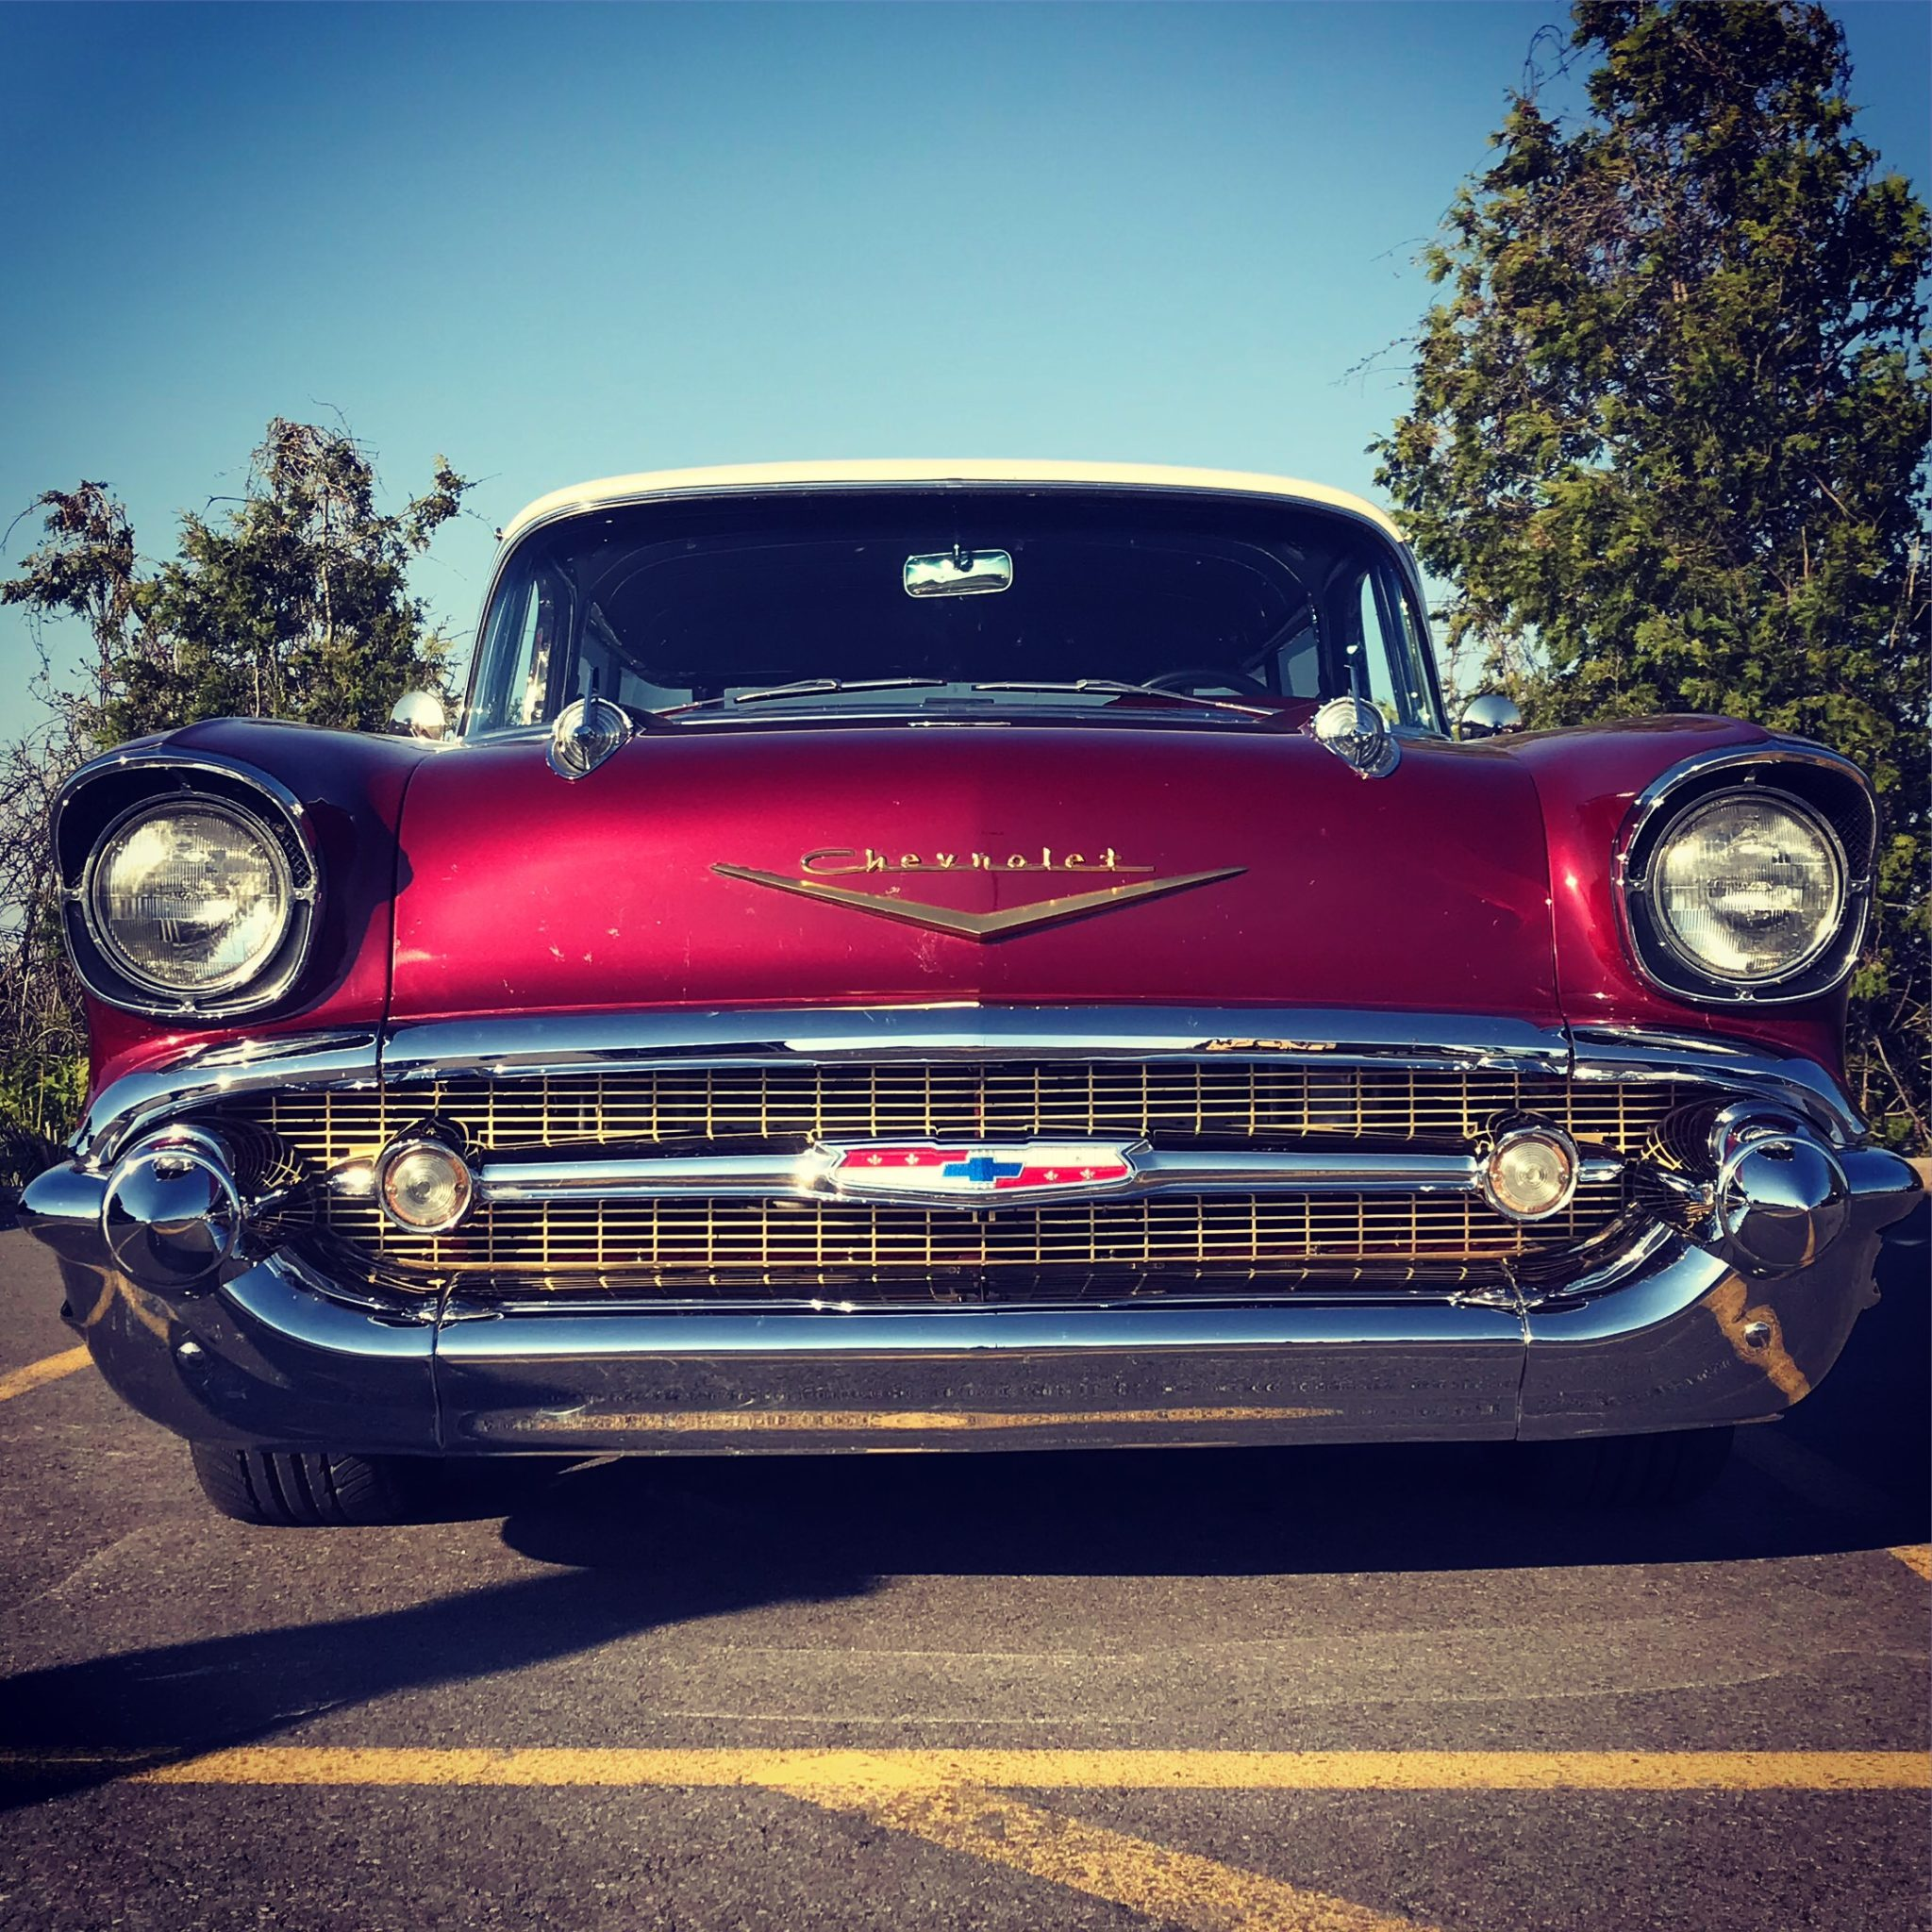 Photo of the front of a 1957 Chevrolet Bel Air